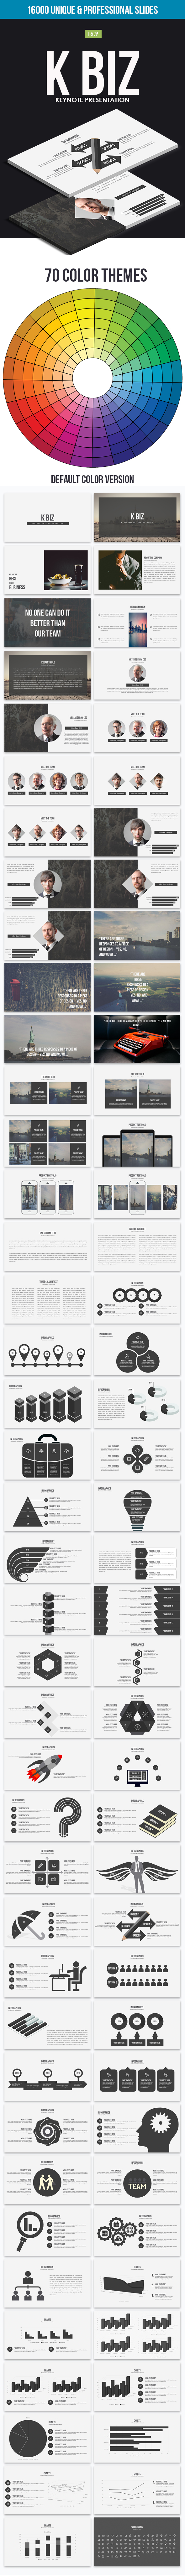 K Biz Keynote Template - Business Keynote Templates